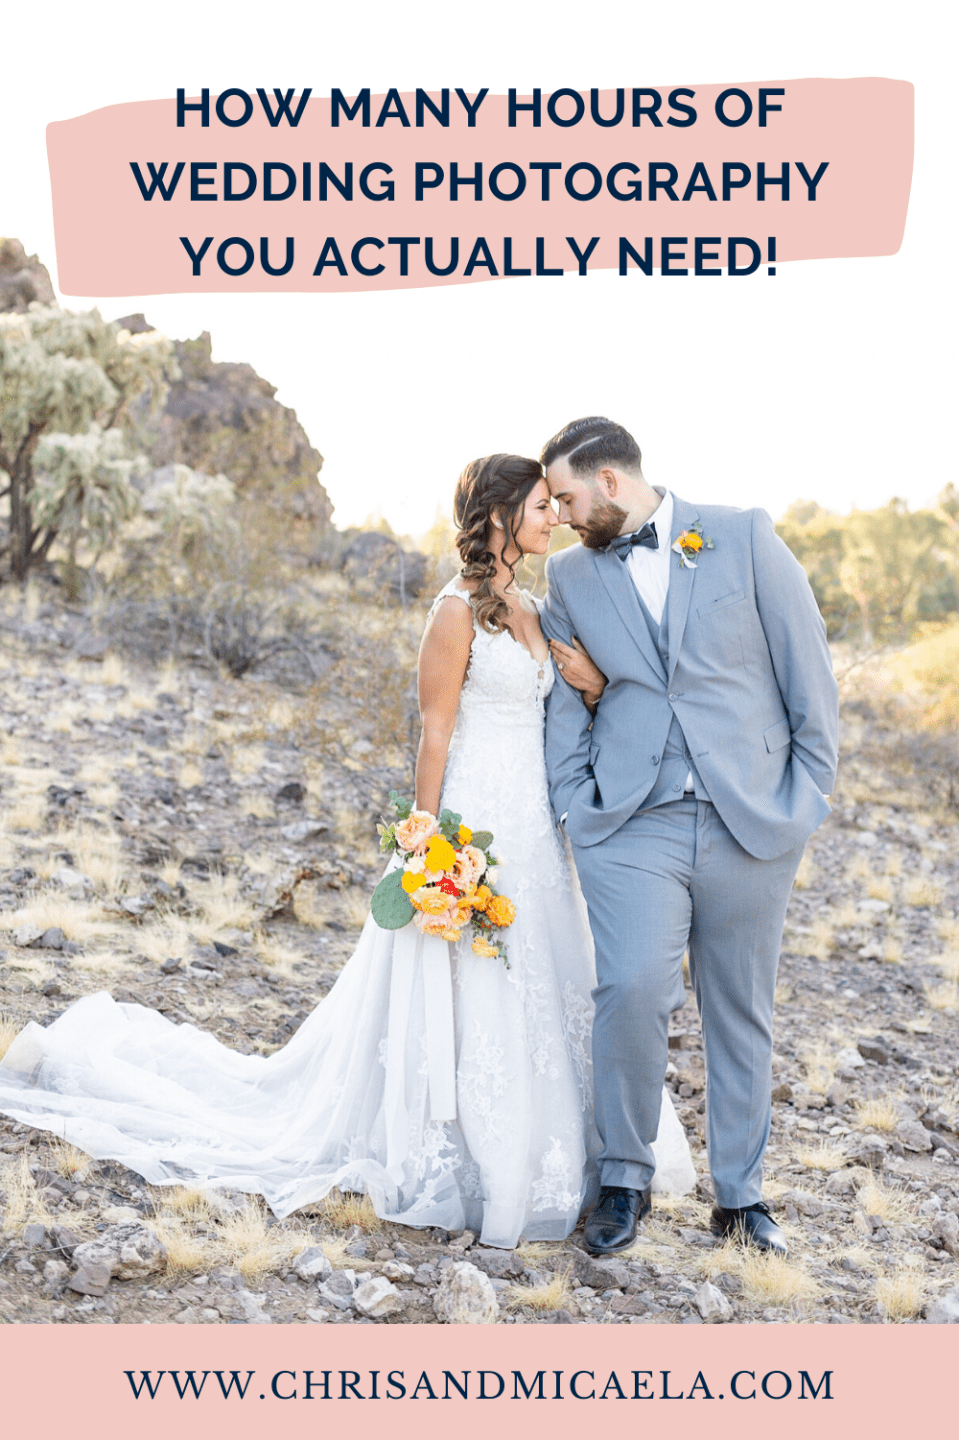 bride and groom with text that says how many hours of wedding photography you actually need